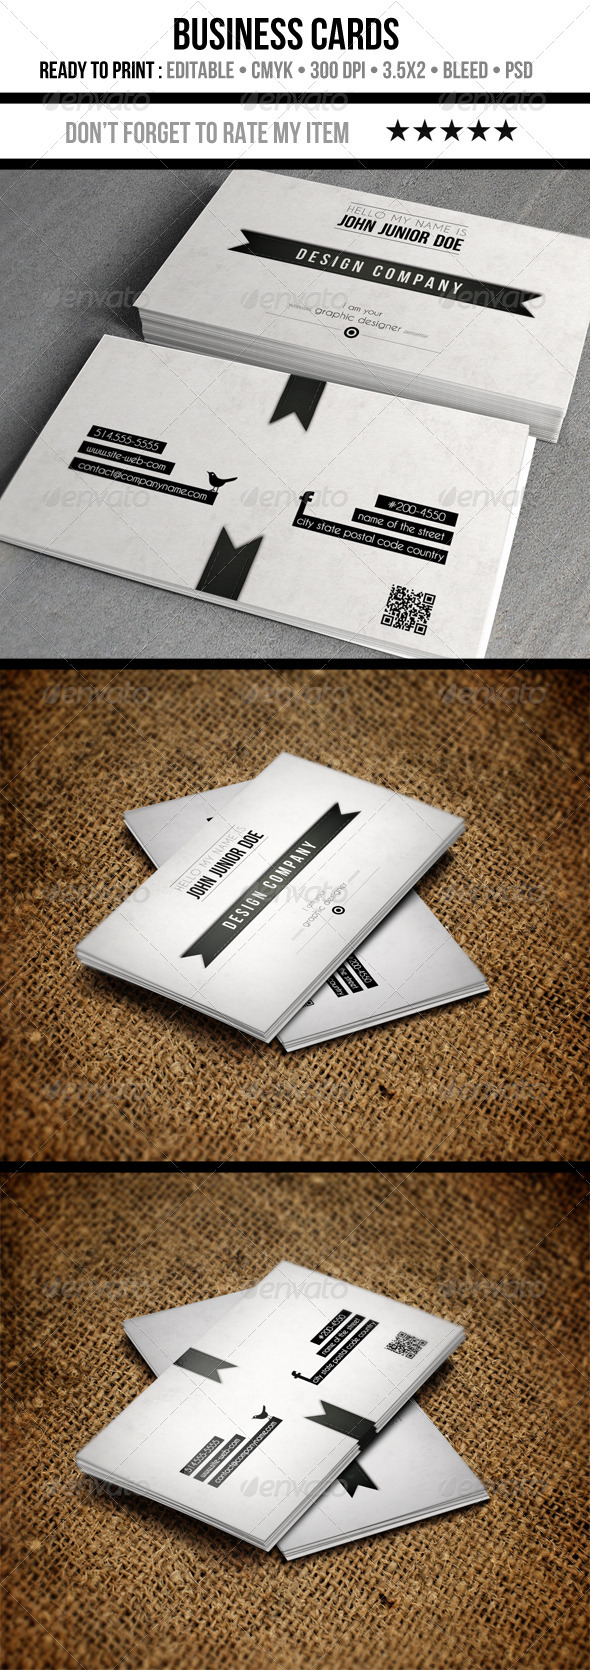 Retro Businness Cards - Retro/Vintage Business Cards